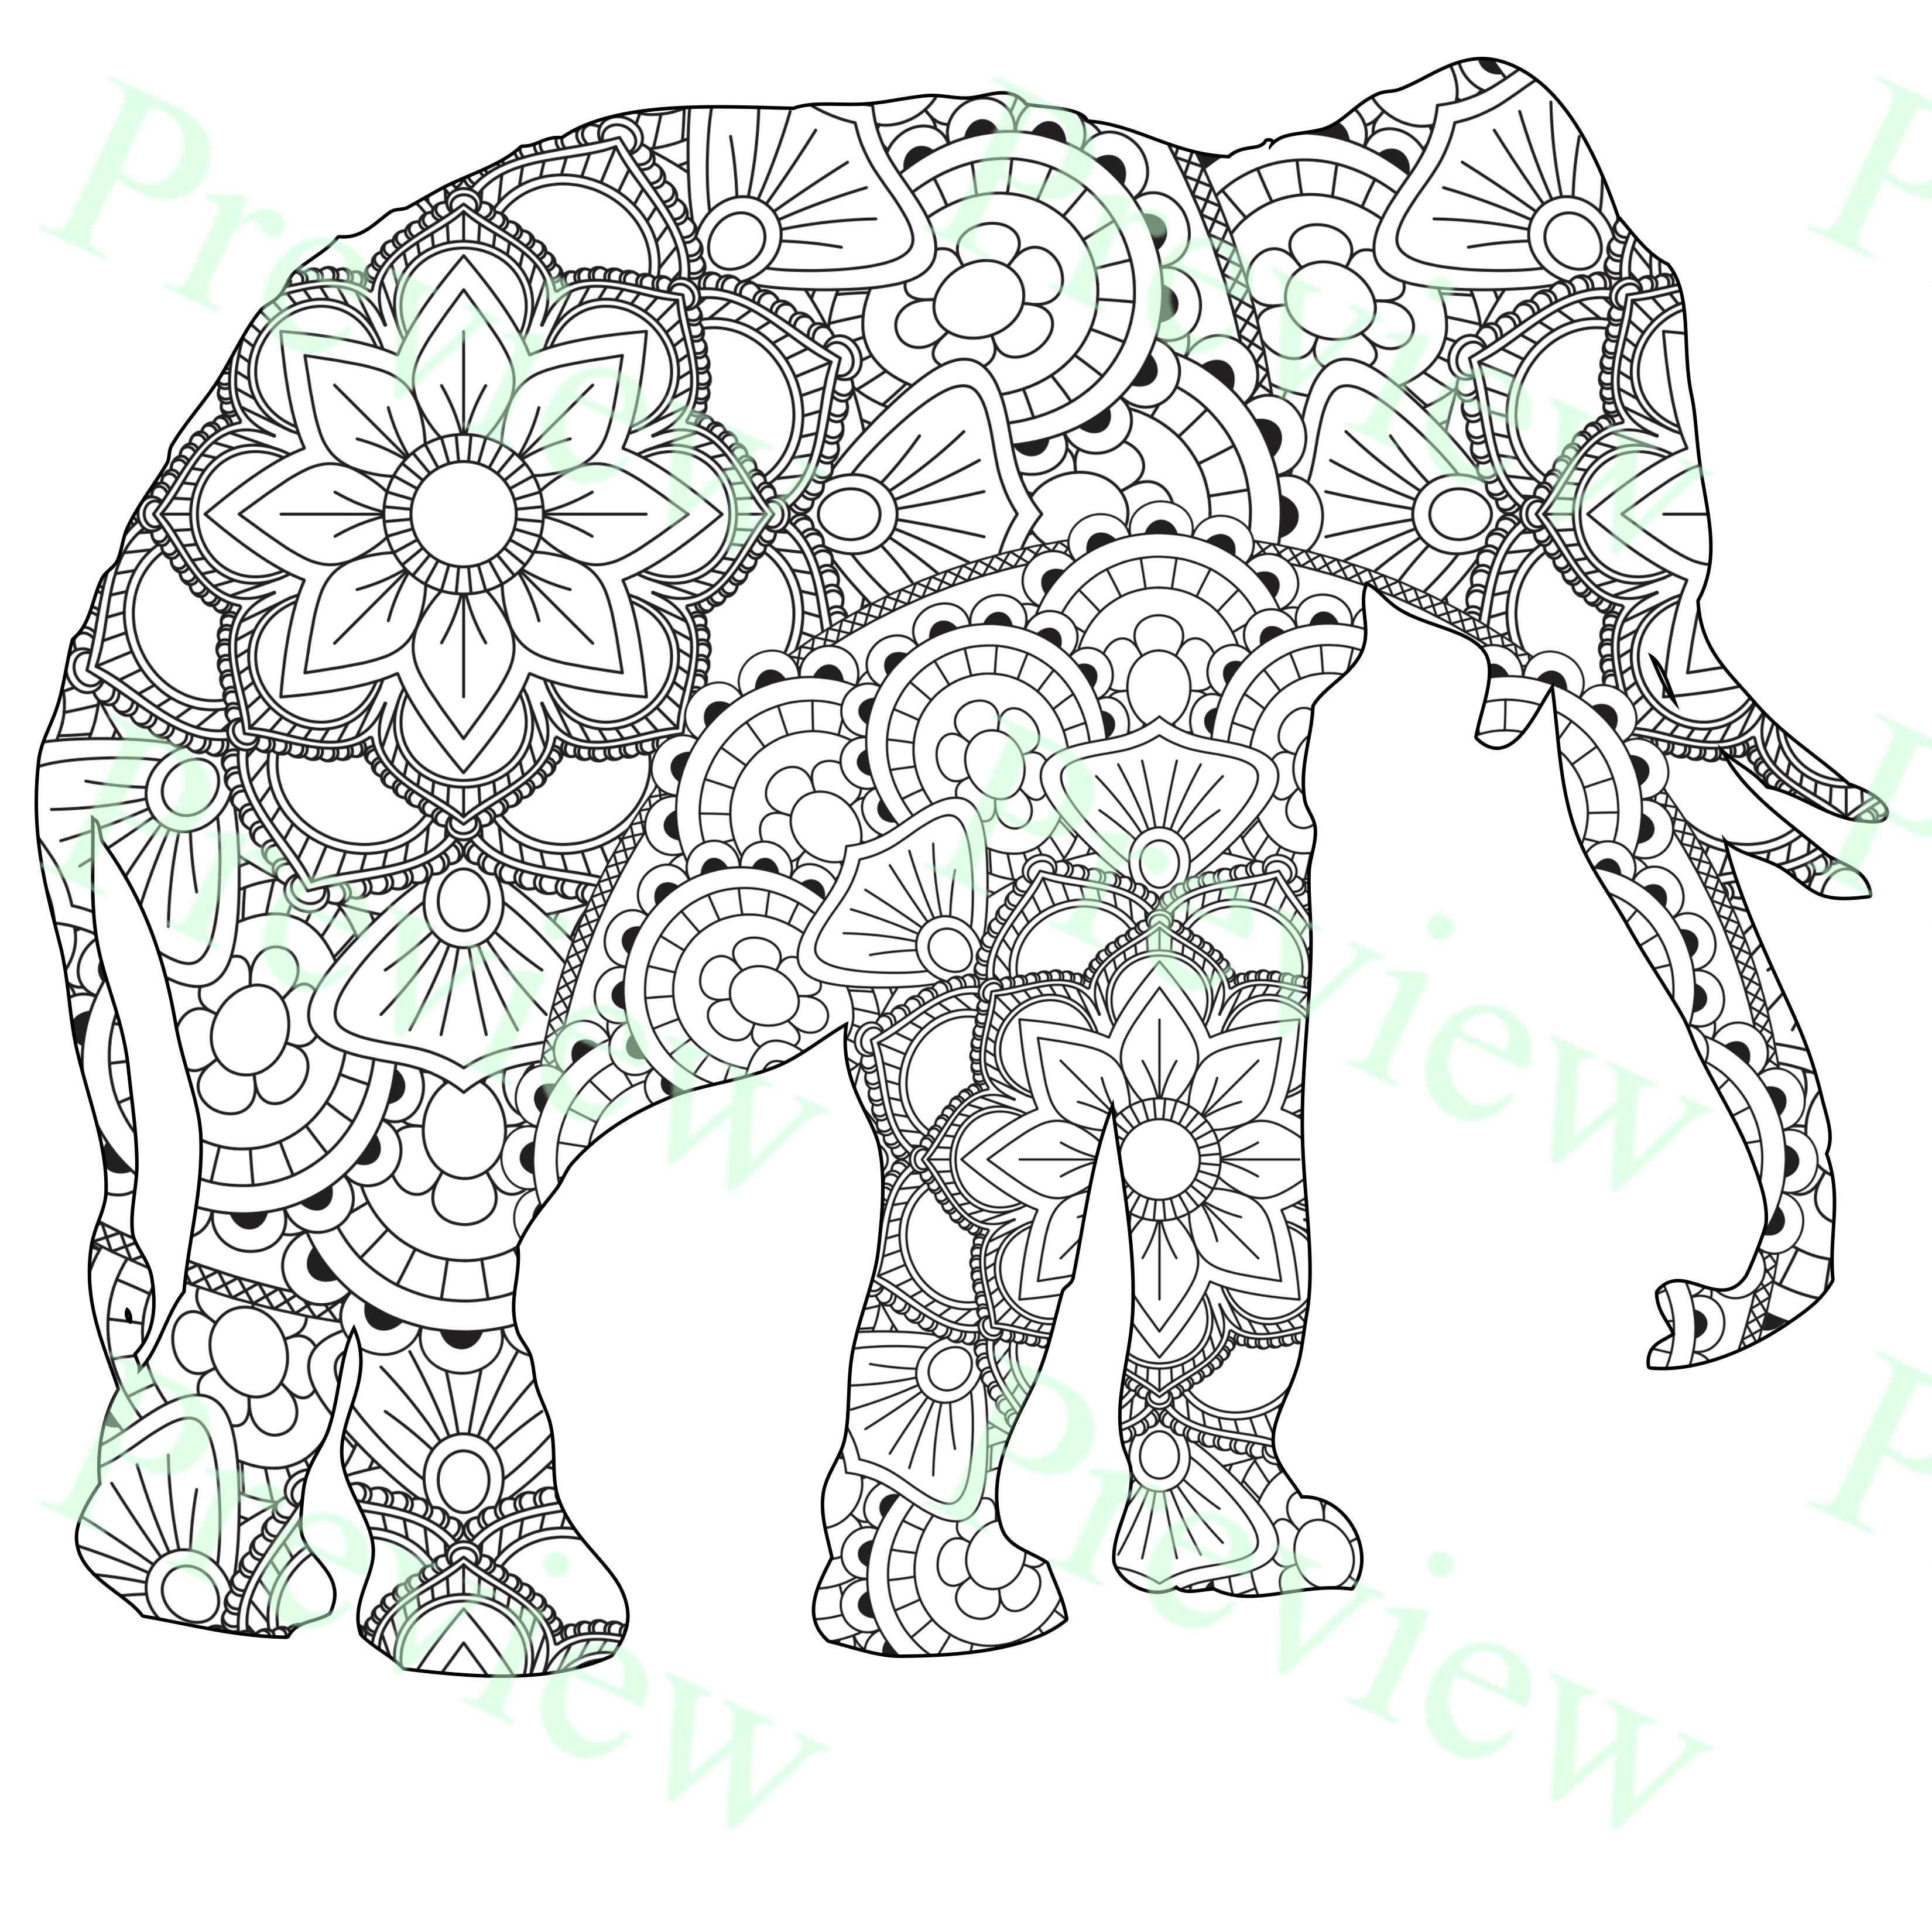 Free Tie Dye Coloring Pages, Download Free Clip Art, Free Clip Art ... | 3300x3300